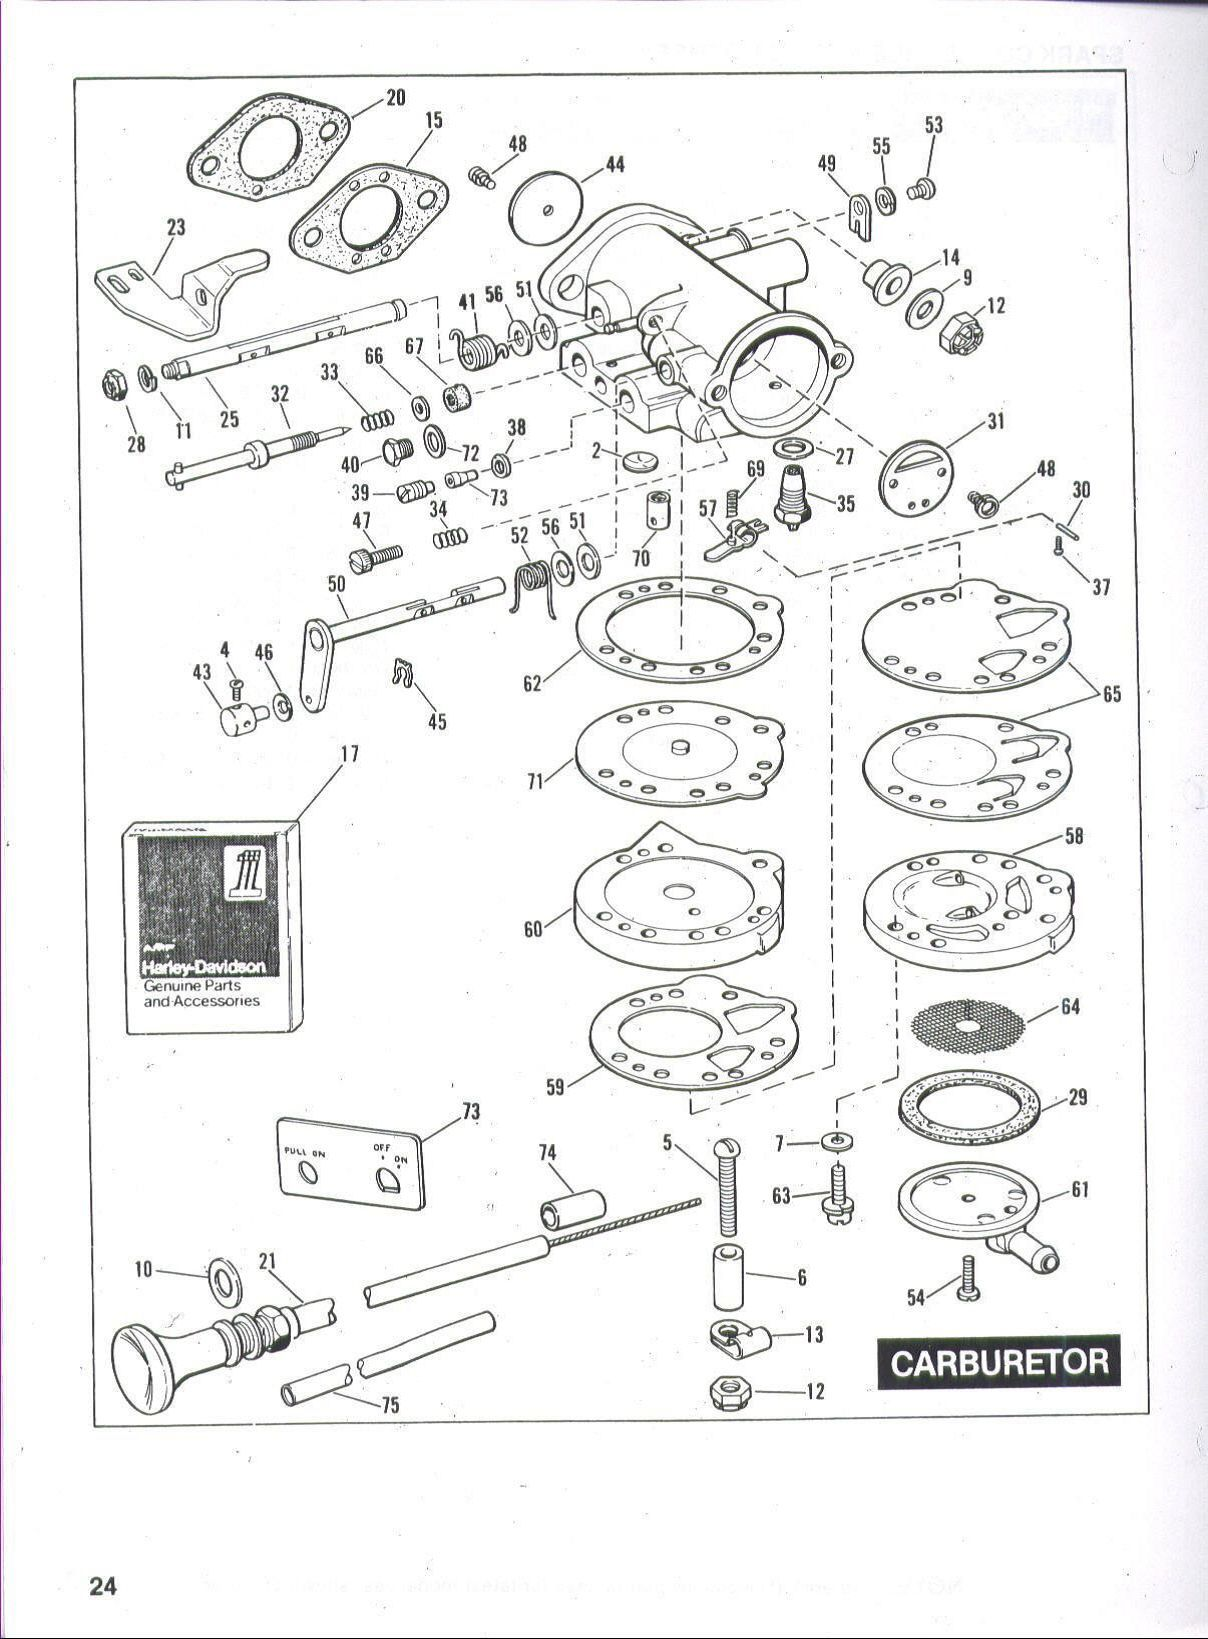 small resolution of harley davidson golf cart carburetor diagram utv stuff golf ez go gas engine carborator diagram